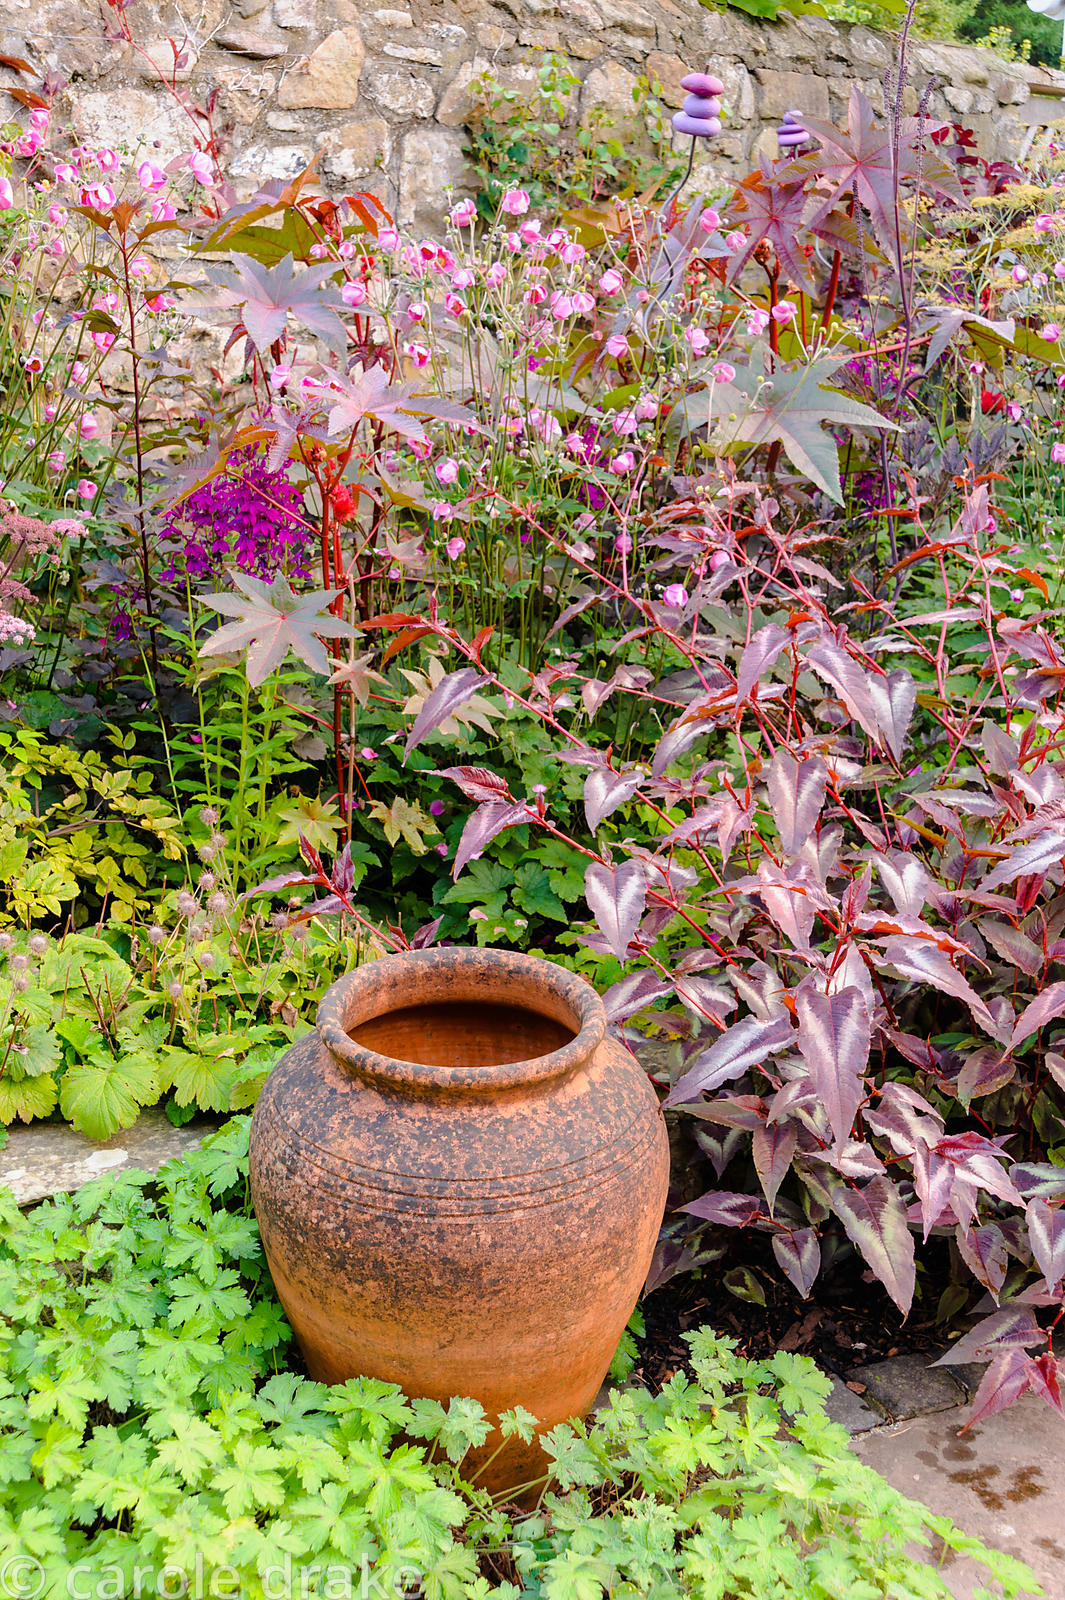 Terracotta urn surrounded by dark purple foliage plants including Persicaria microcephala 'Red Dragon' (PBR) and Ricinus comm...